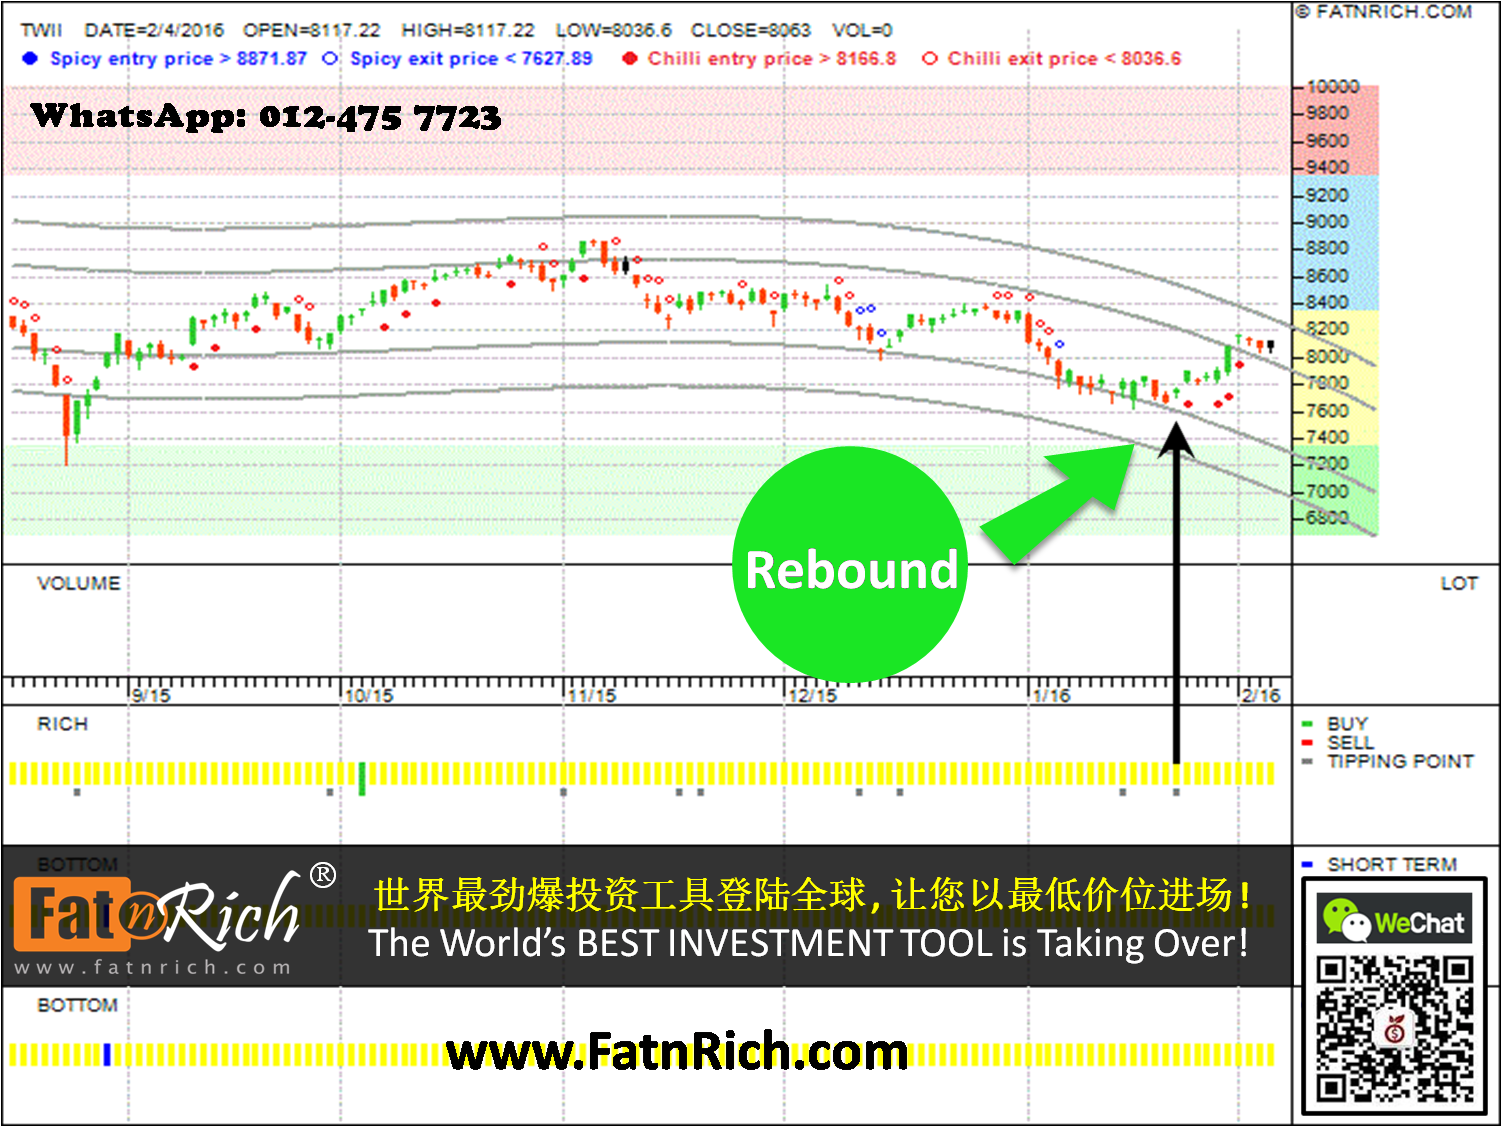 Grabbing the rebound opportunity of taiwan weighted index for Twii